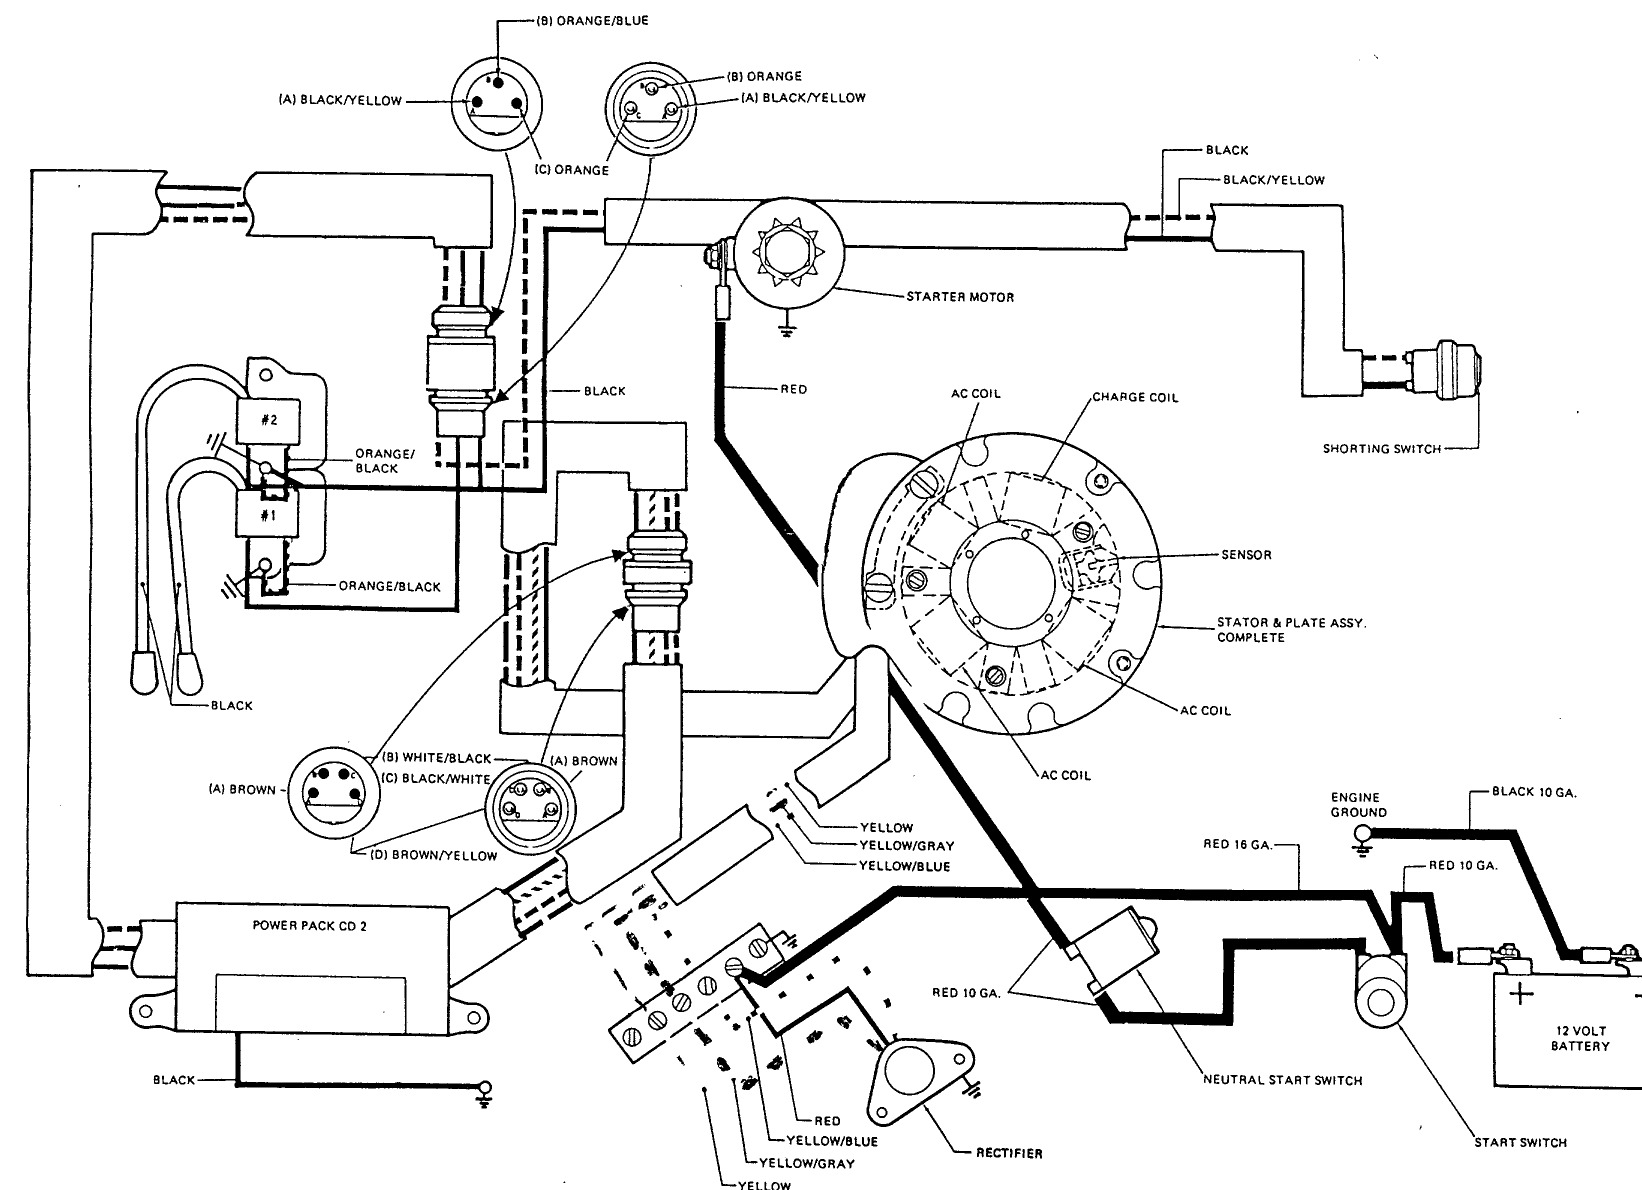 marine s power wiring diagram pdf with Johnson Troubleshooting on Generac 5000 Generator Owners Manual moreover 1995 Suburban Factory   Wiring further Generac 4000exl Generator Owners Manual moreover Carrier 73 3w Heat Air Conditioner Manual furthermore 1984 Chevy Tilt Steering Column Diagram.